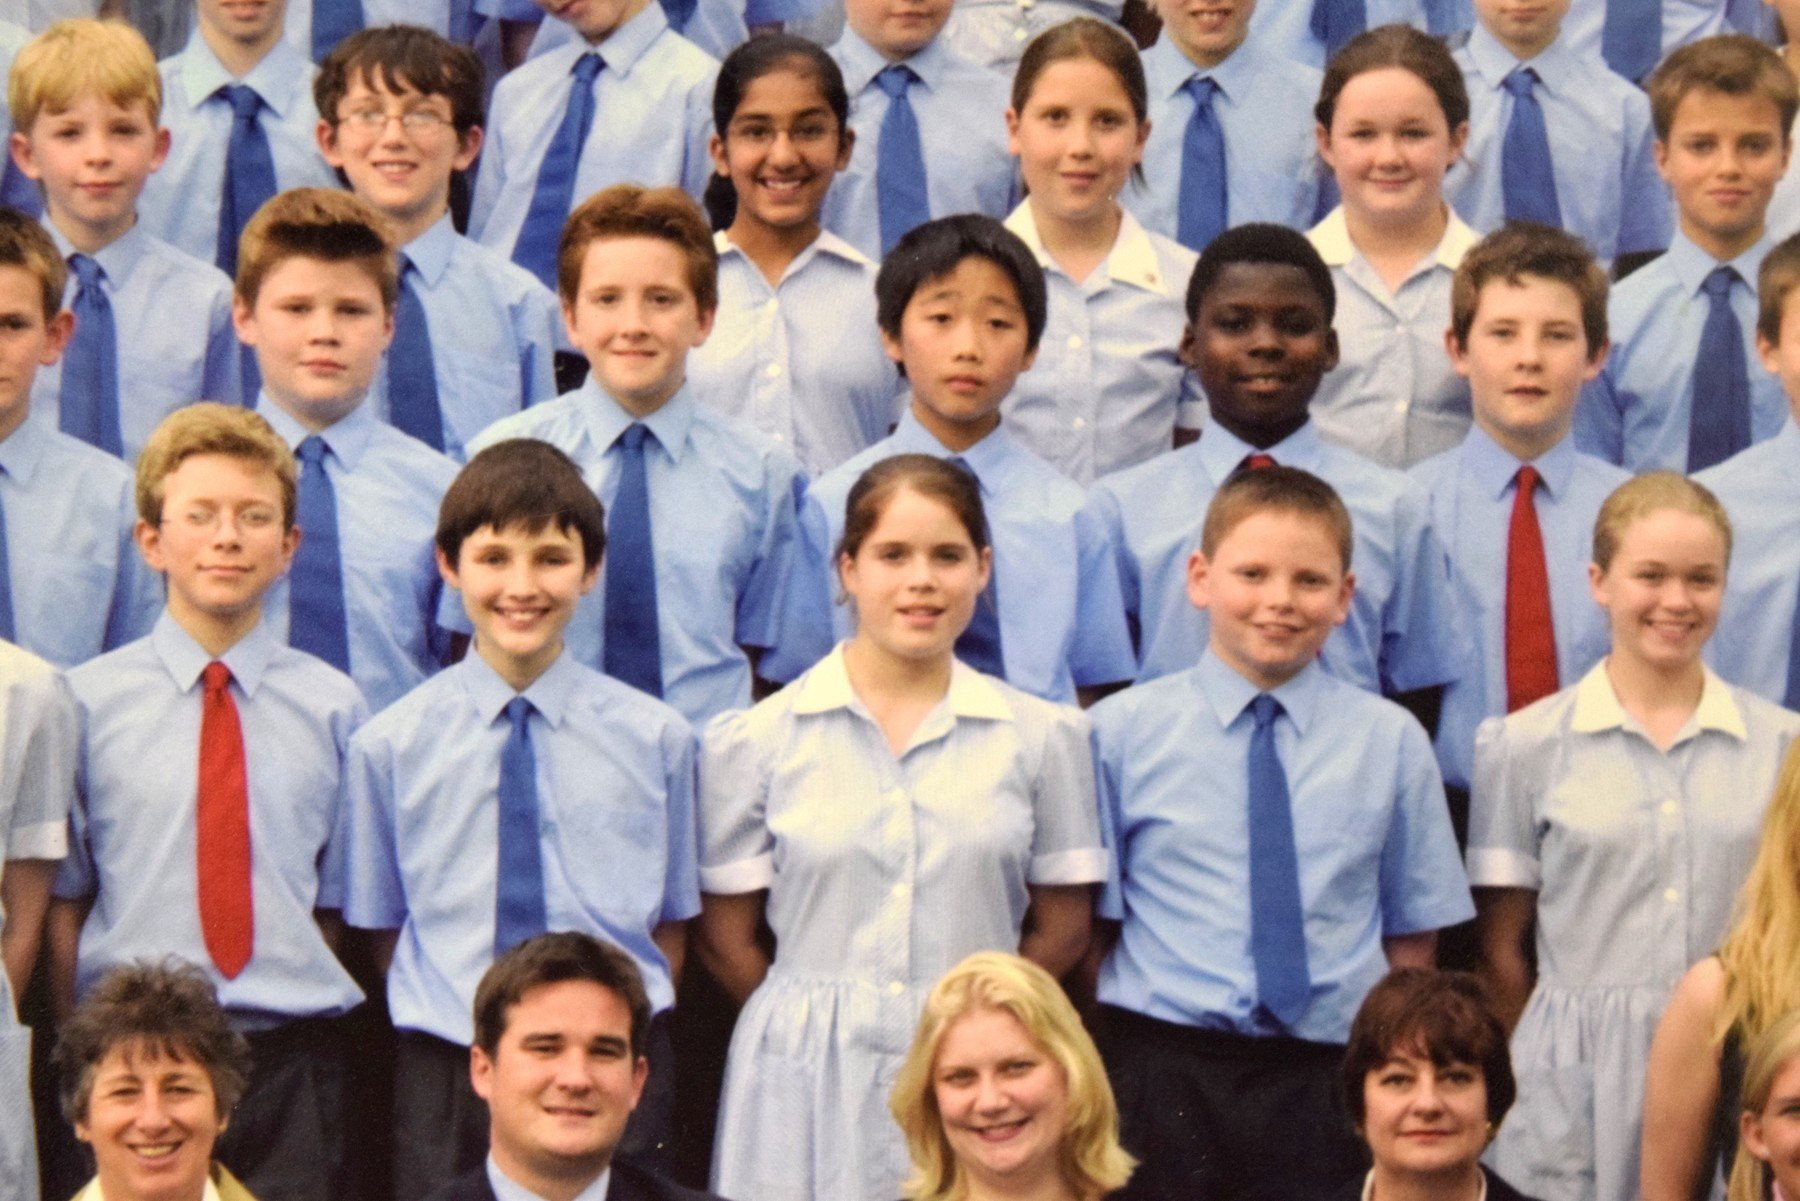 Aged 12, Princess Eugenie at St George's School Windsor Castle in 2002  FULL TEXT OF THIS FEATURE IS SEND TO YOU VIA E-MAIL., Image: 390517187, License: Rights-managed, Restrictions: , Model Release: no, Credit line: Profimedia, IMP Features